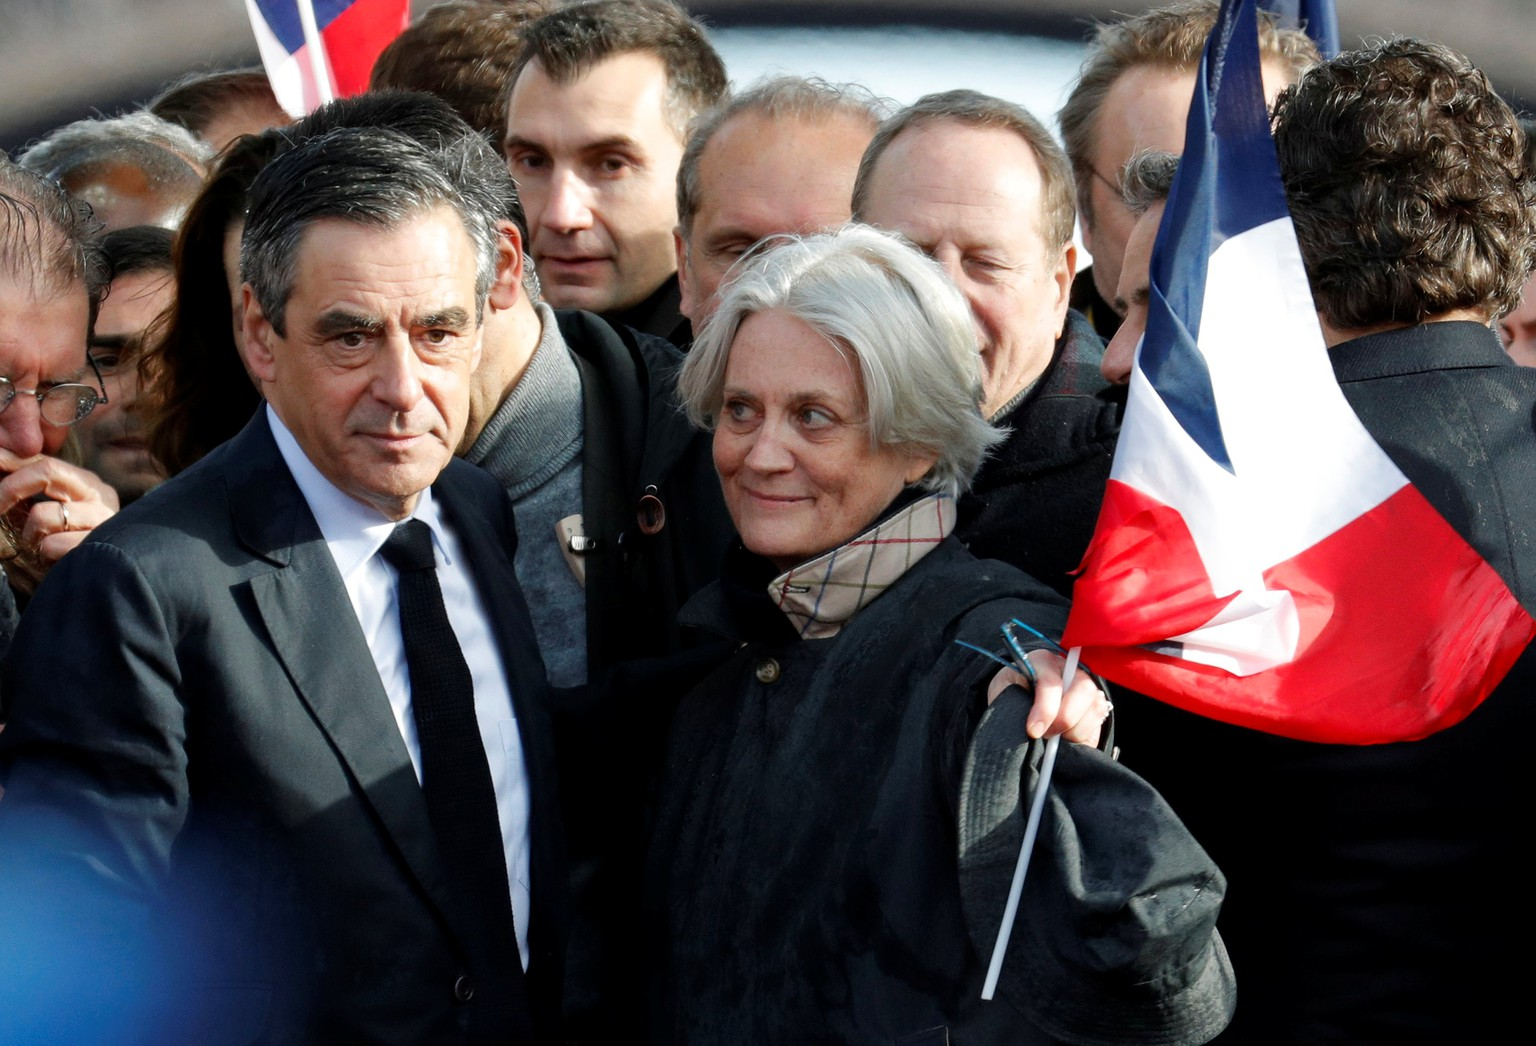 Francois Fillon, former French prime minister, member of The Republicans political party and 2017 presidential election candidate of the French centre-right and his wife Penelope (R) attend a meeting at the Trocadero square across from the Eiffel Tower in Paris, France, March 5, 2017. REUTERS/Philippe Wojazer